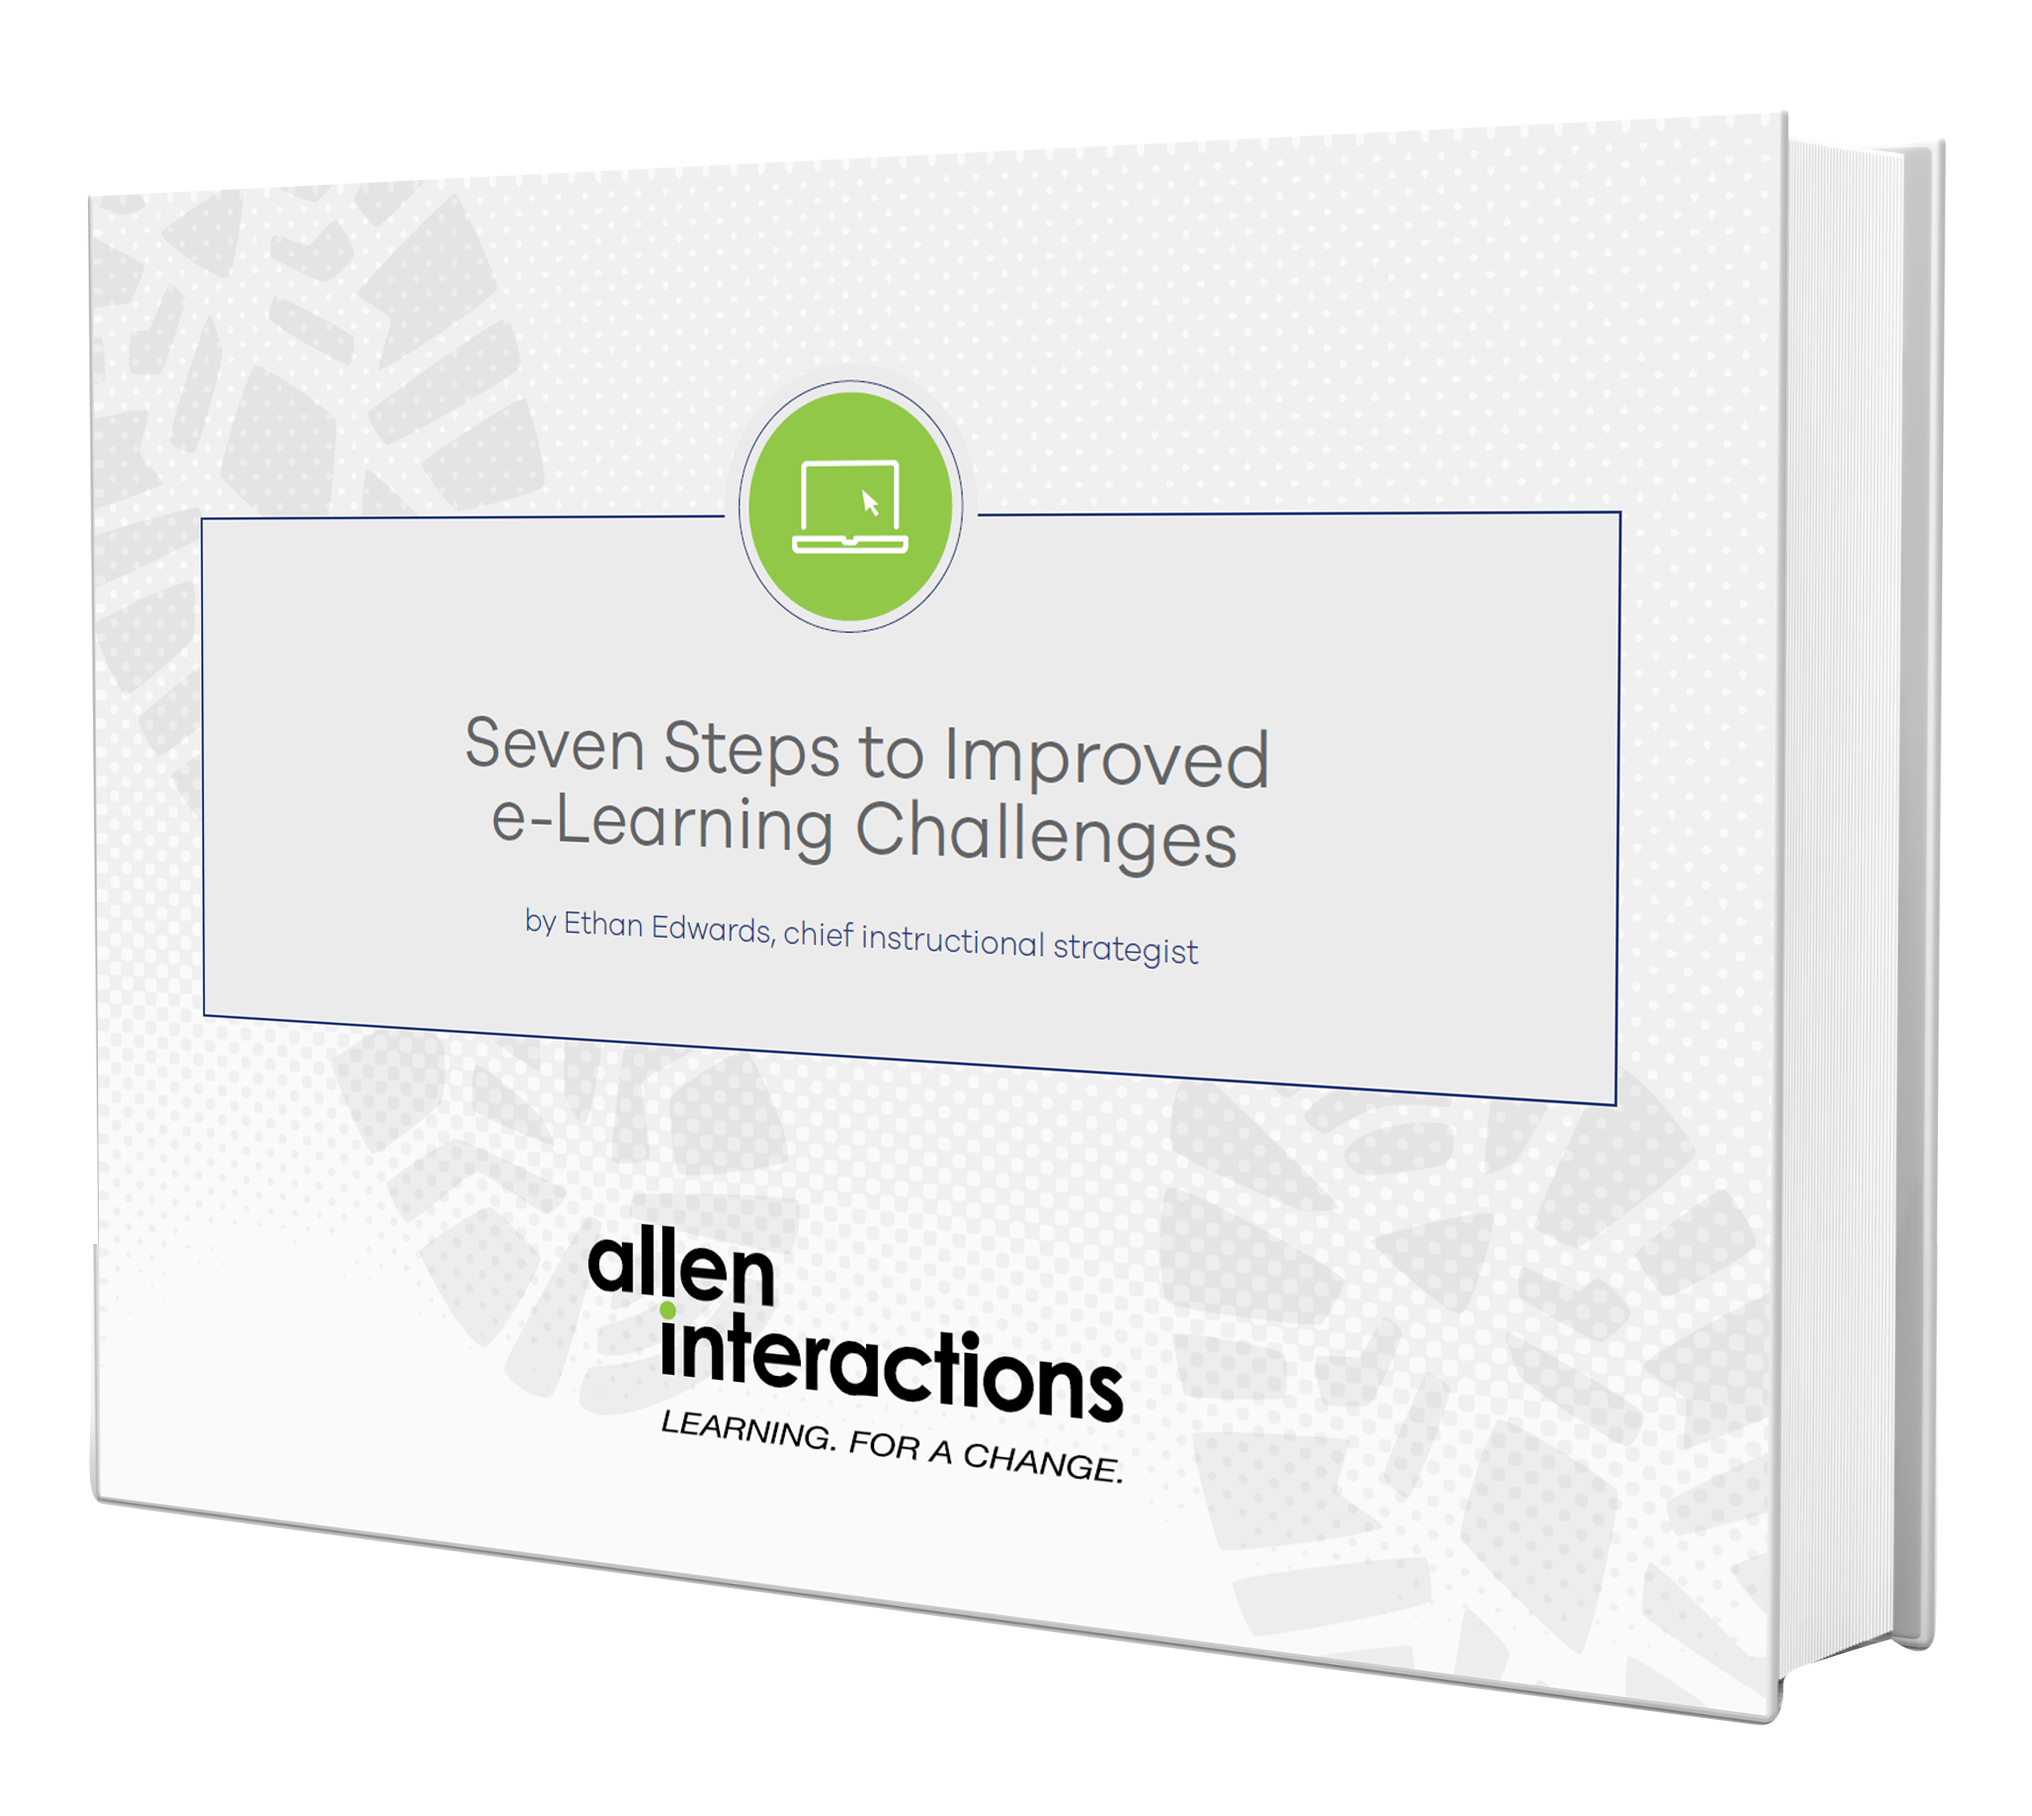 eLearning_Challenges_eBook